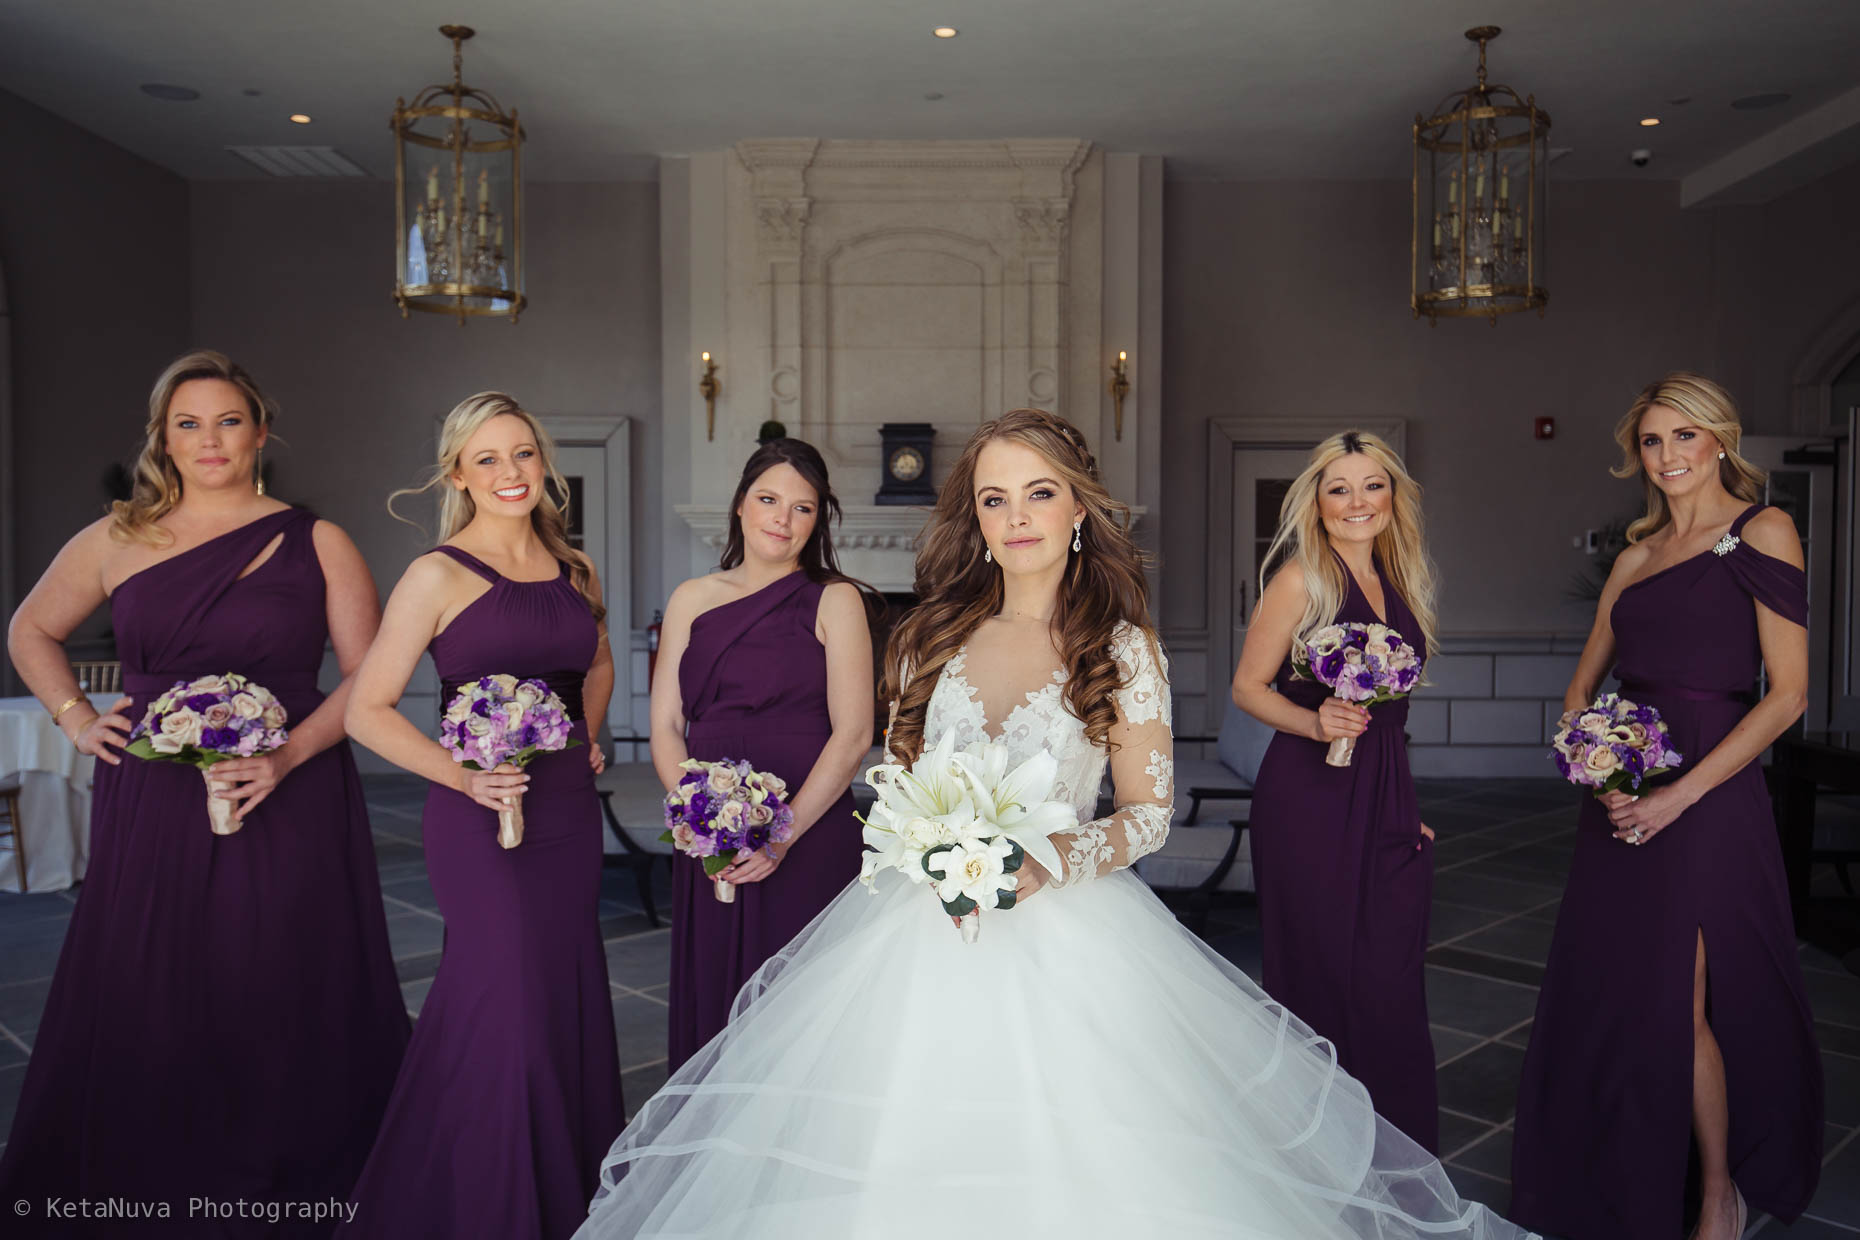 Park Chateau Estate wedding - Lovely picture of the bridesmaids.